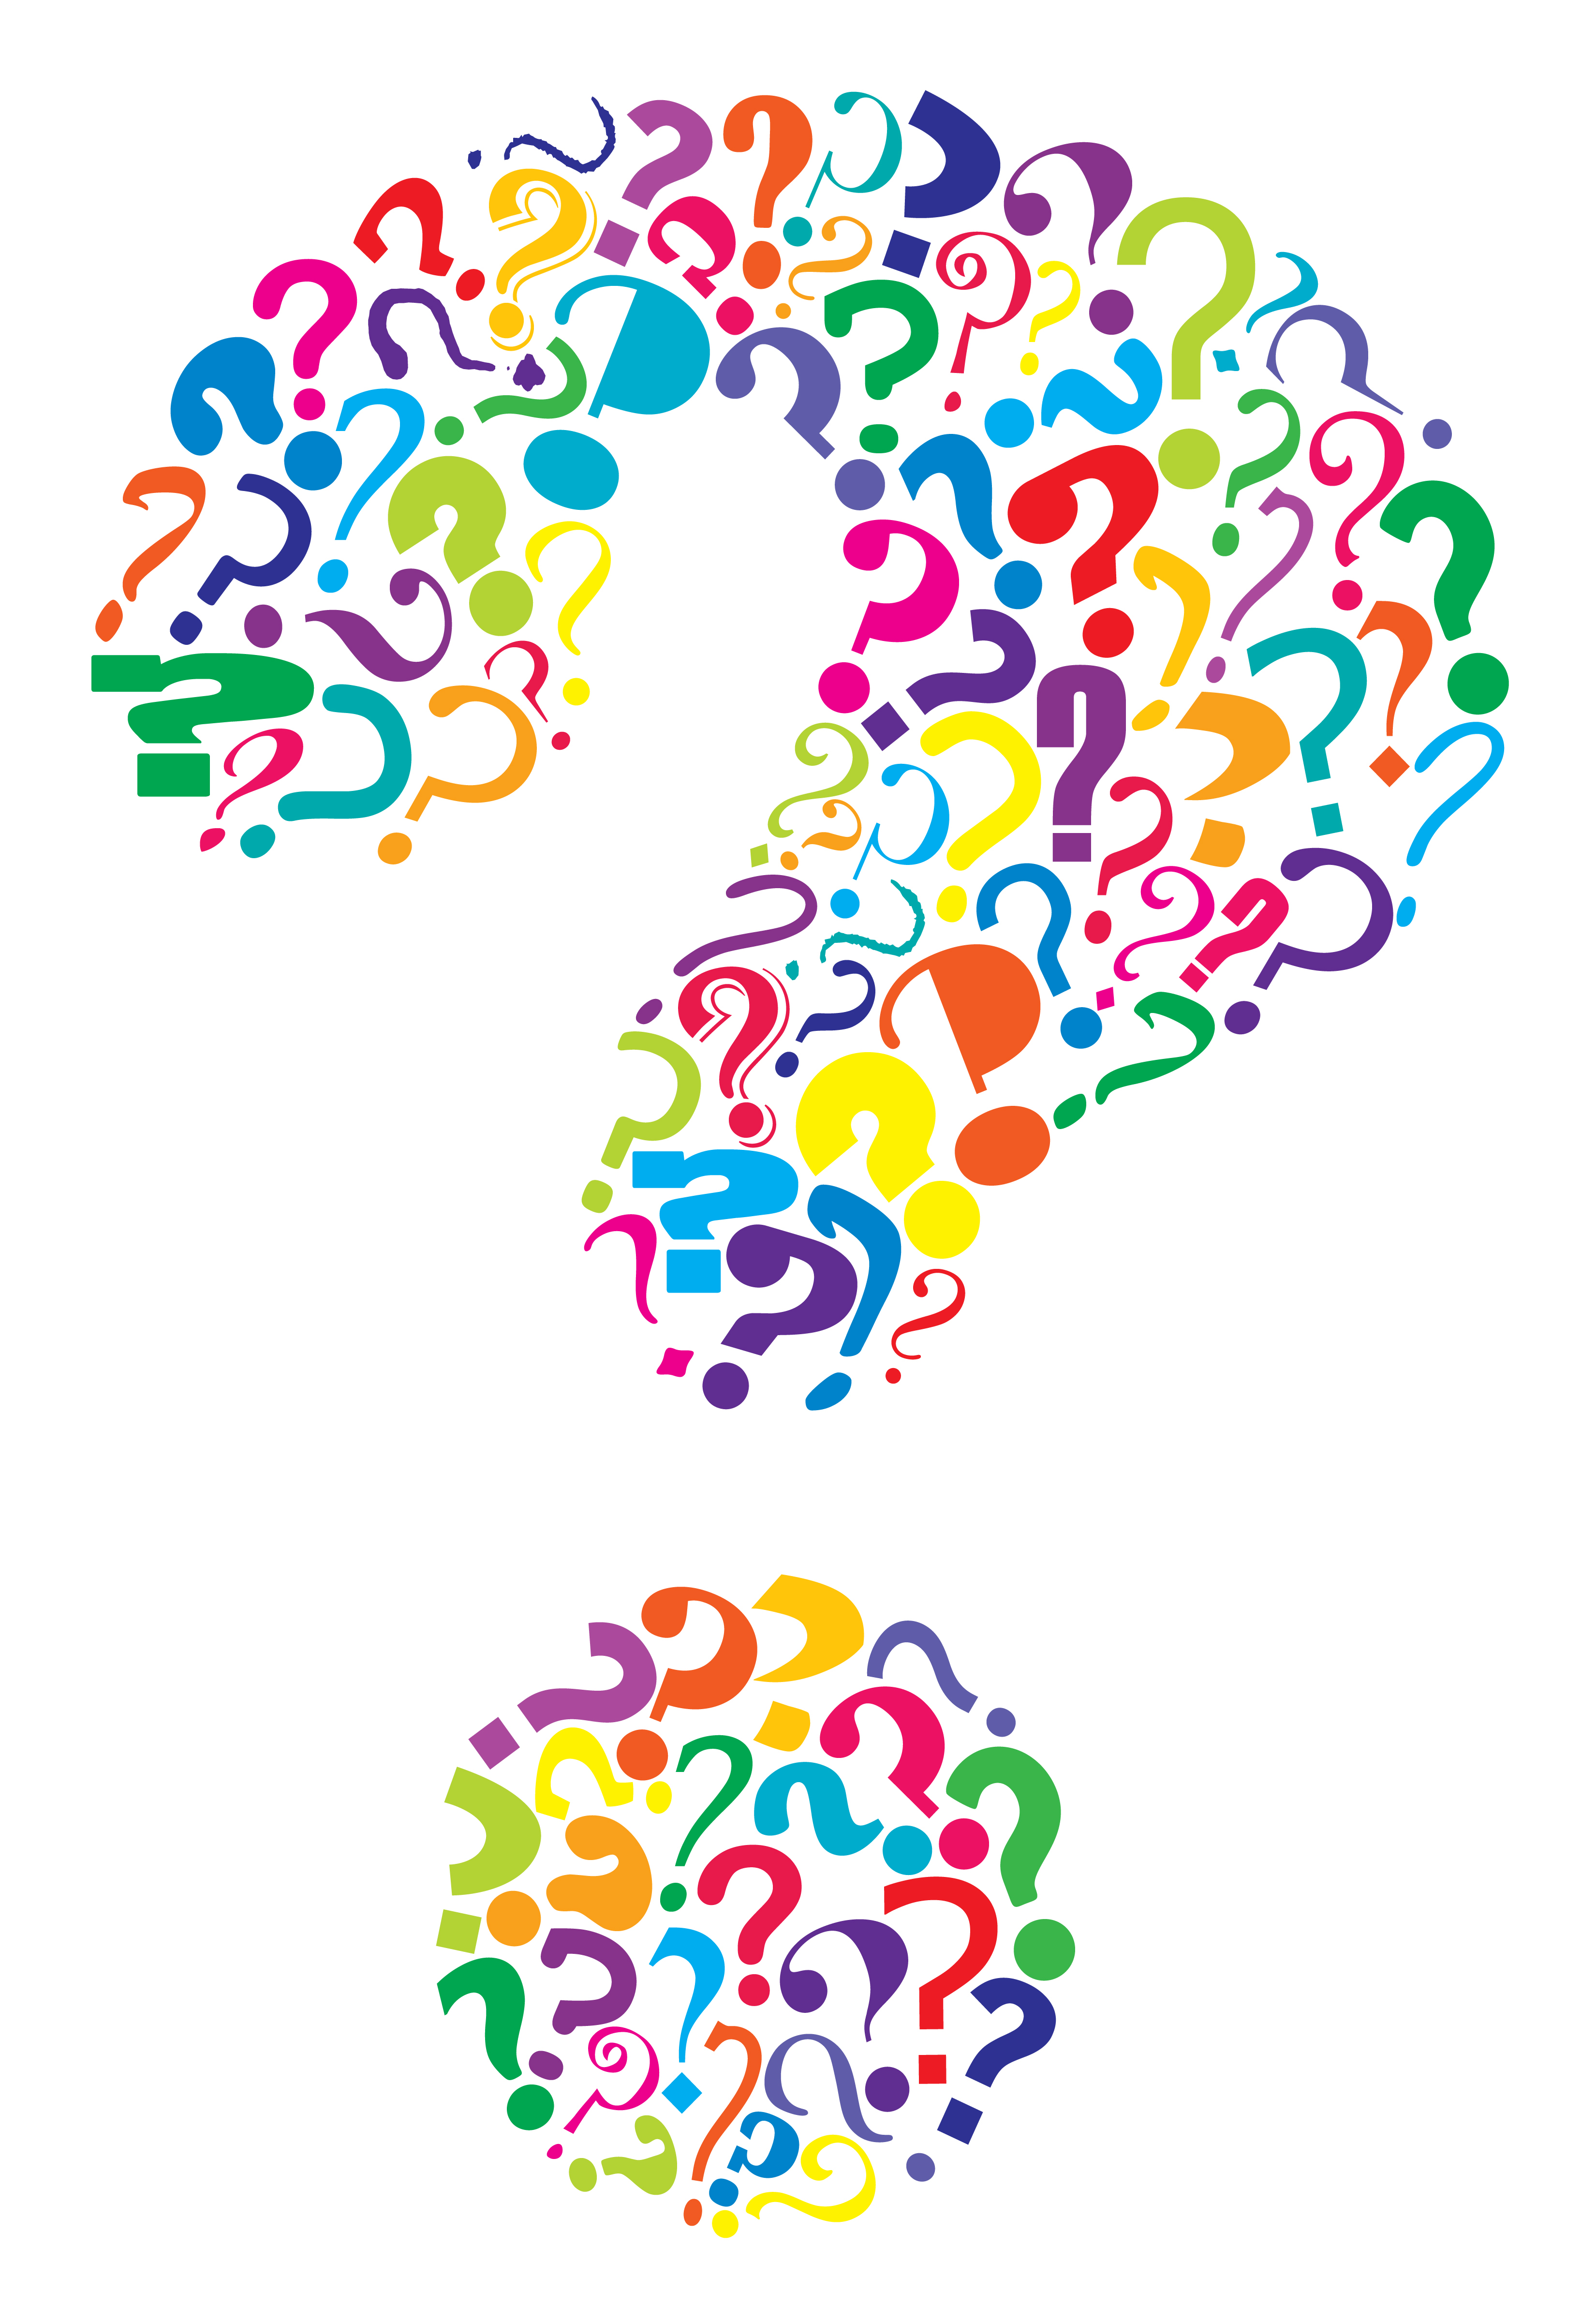 Clipart of question mark